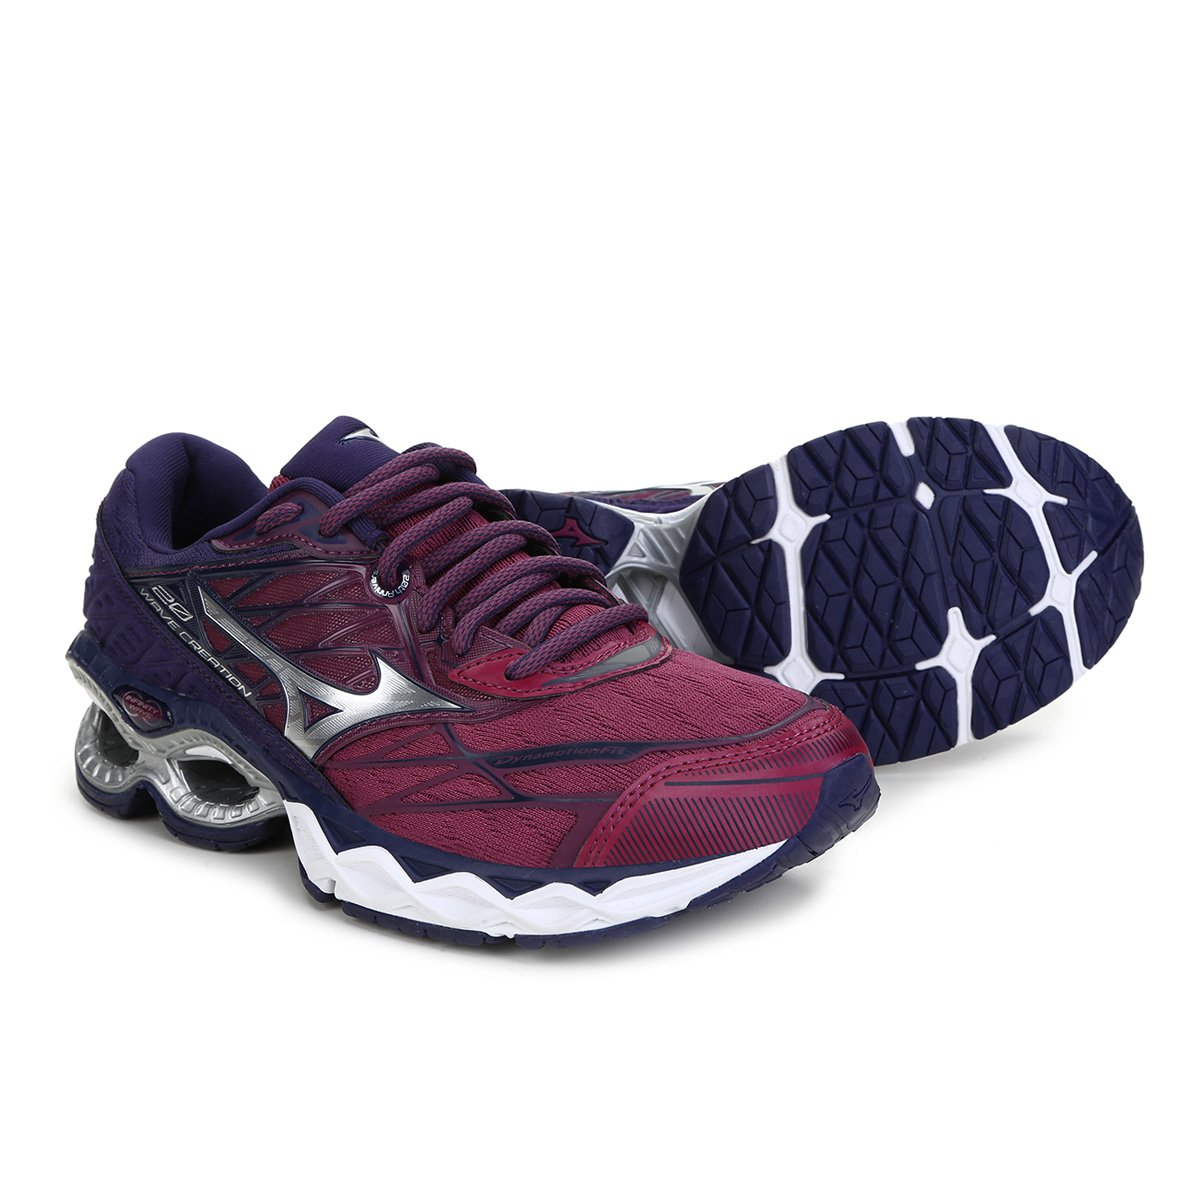 tenis mizuno wave creation 15w feminino 50